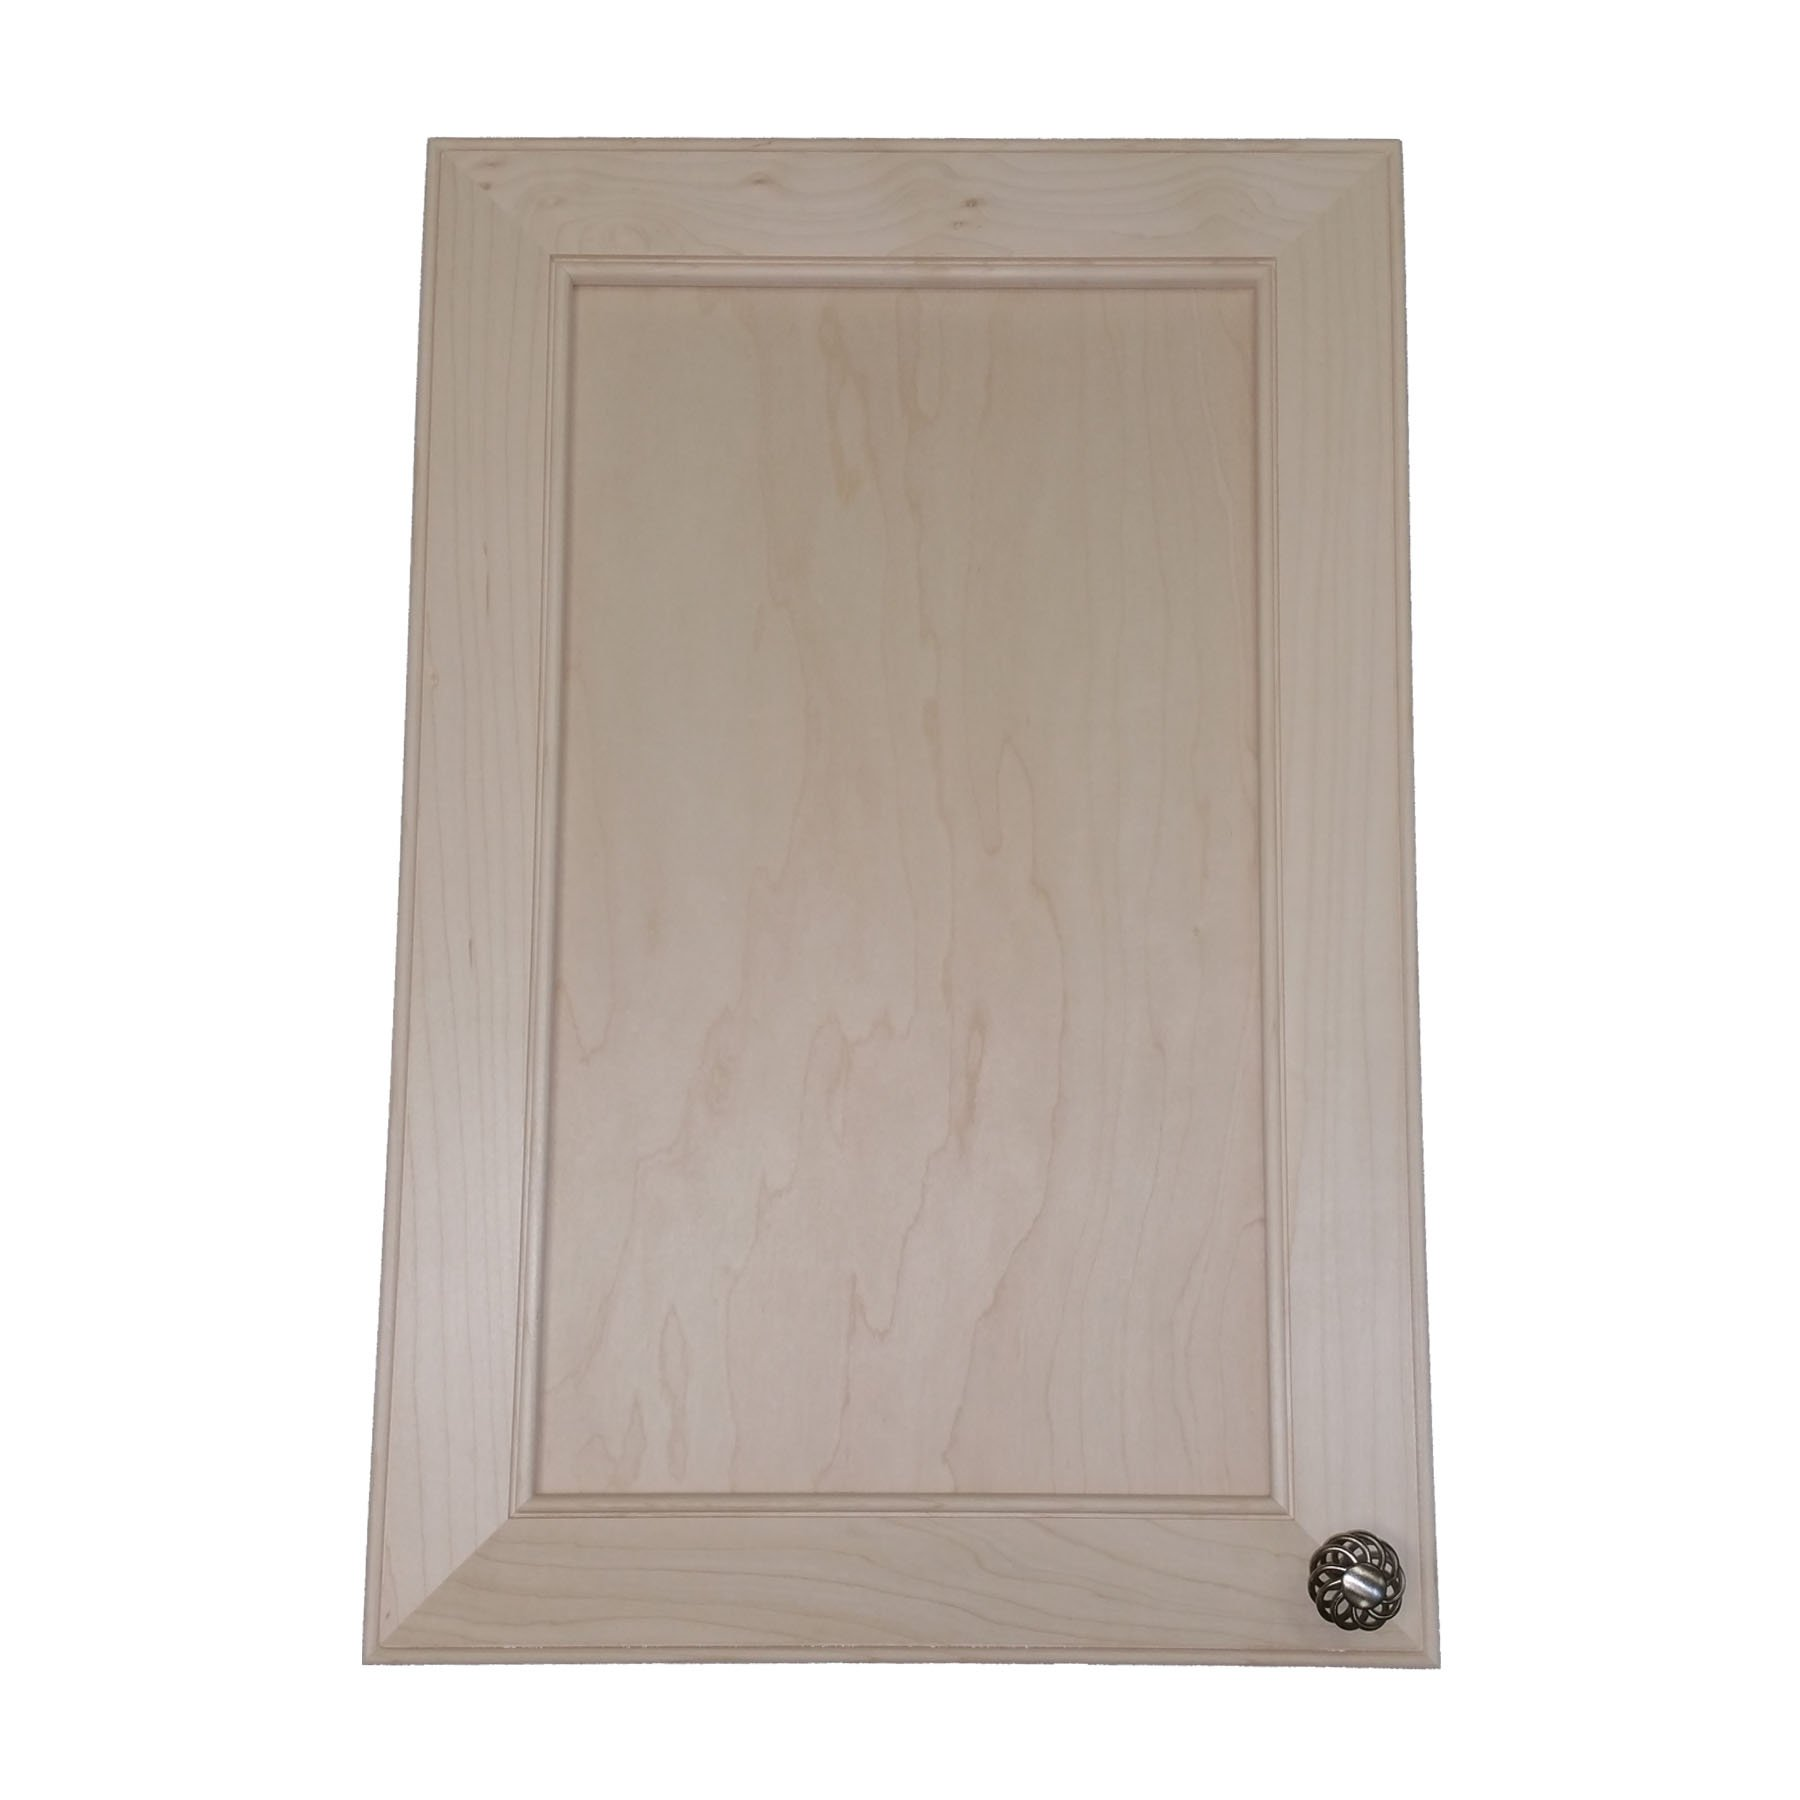 Wood Cabinets Direct MAX-BCK-222 Maxwell Recessed in the Wall Frameless Medicine Cabinet, 22''